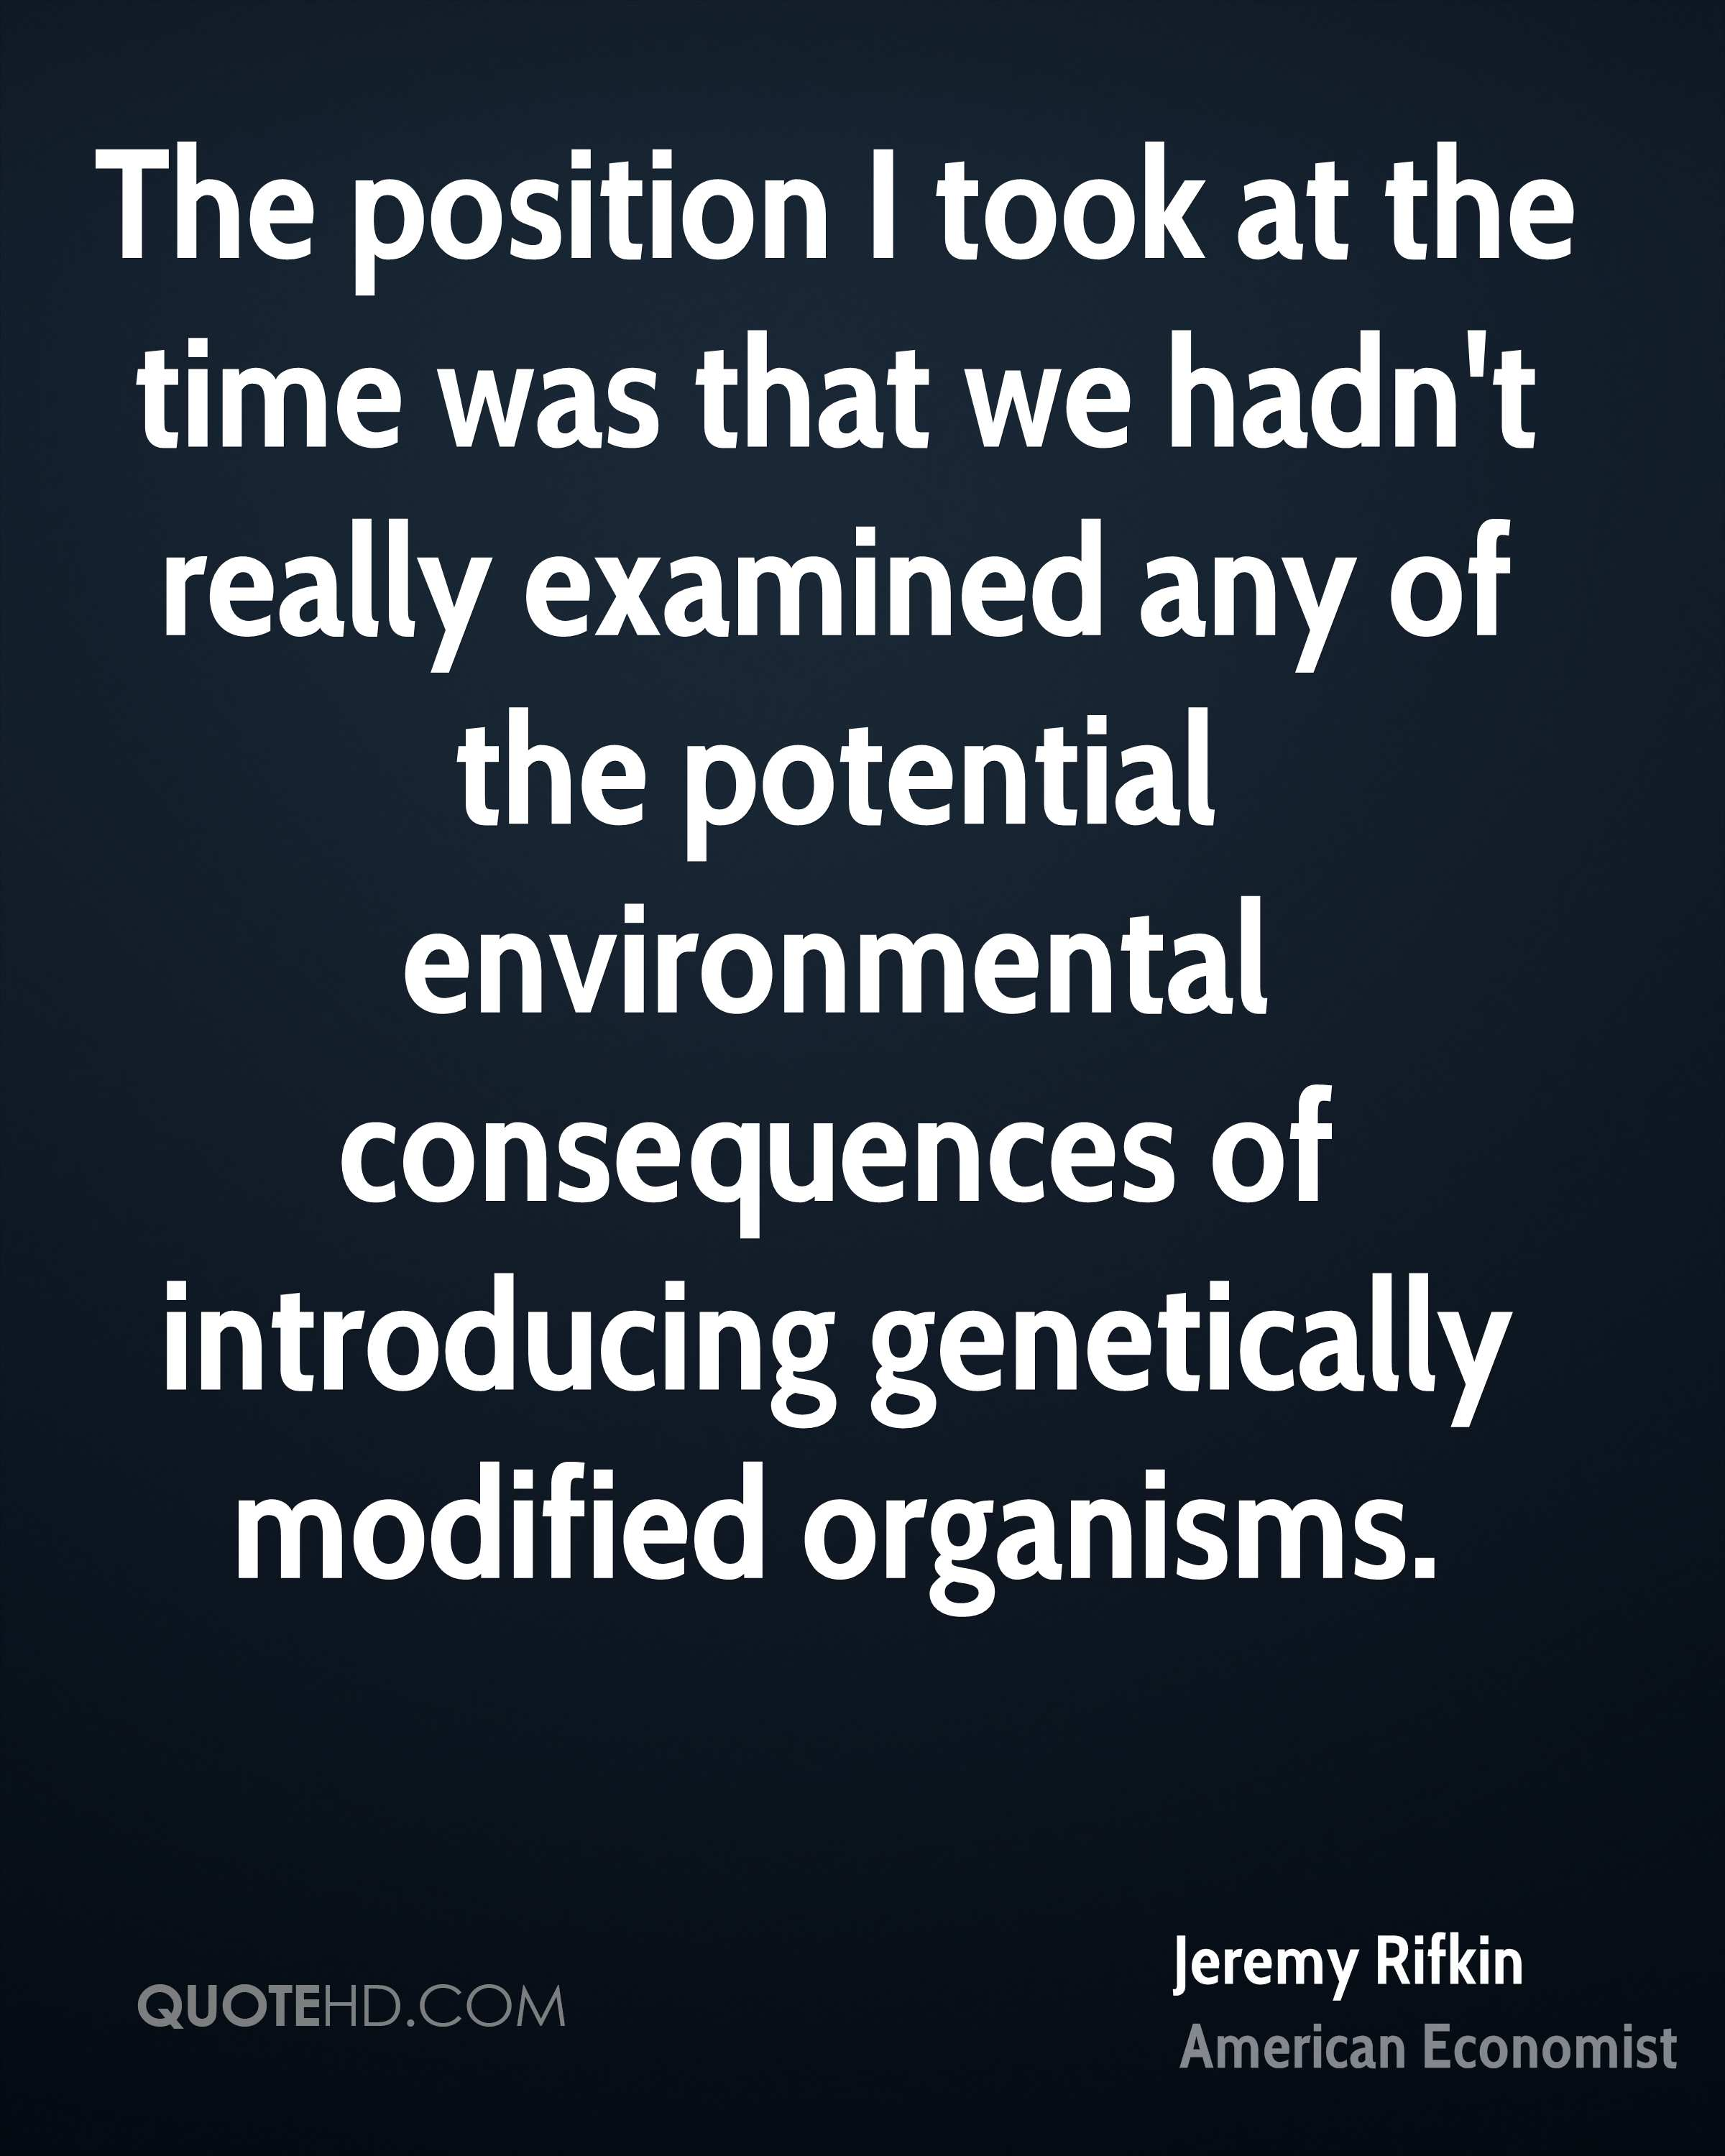 The position I took at the time was that we hadn't really examined any of the potential environmental consequences of introducing genetically modified organisms.